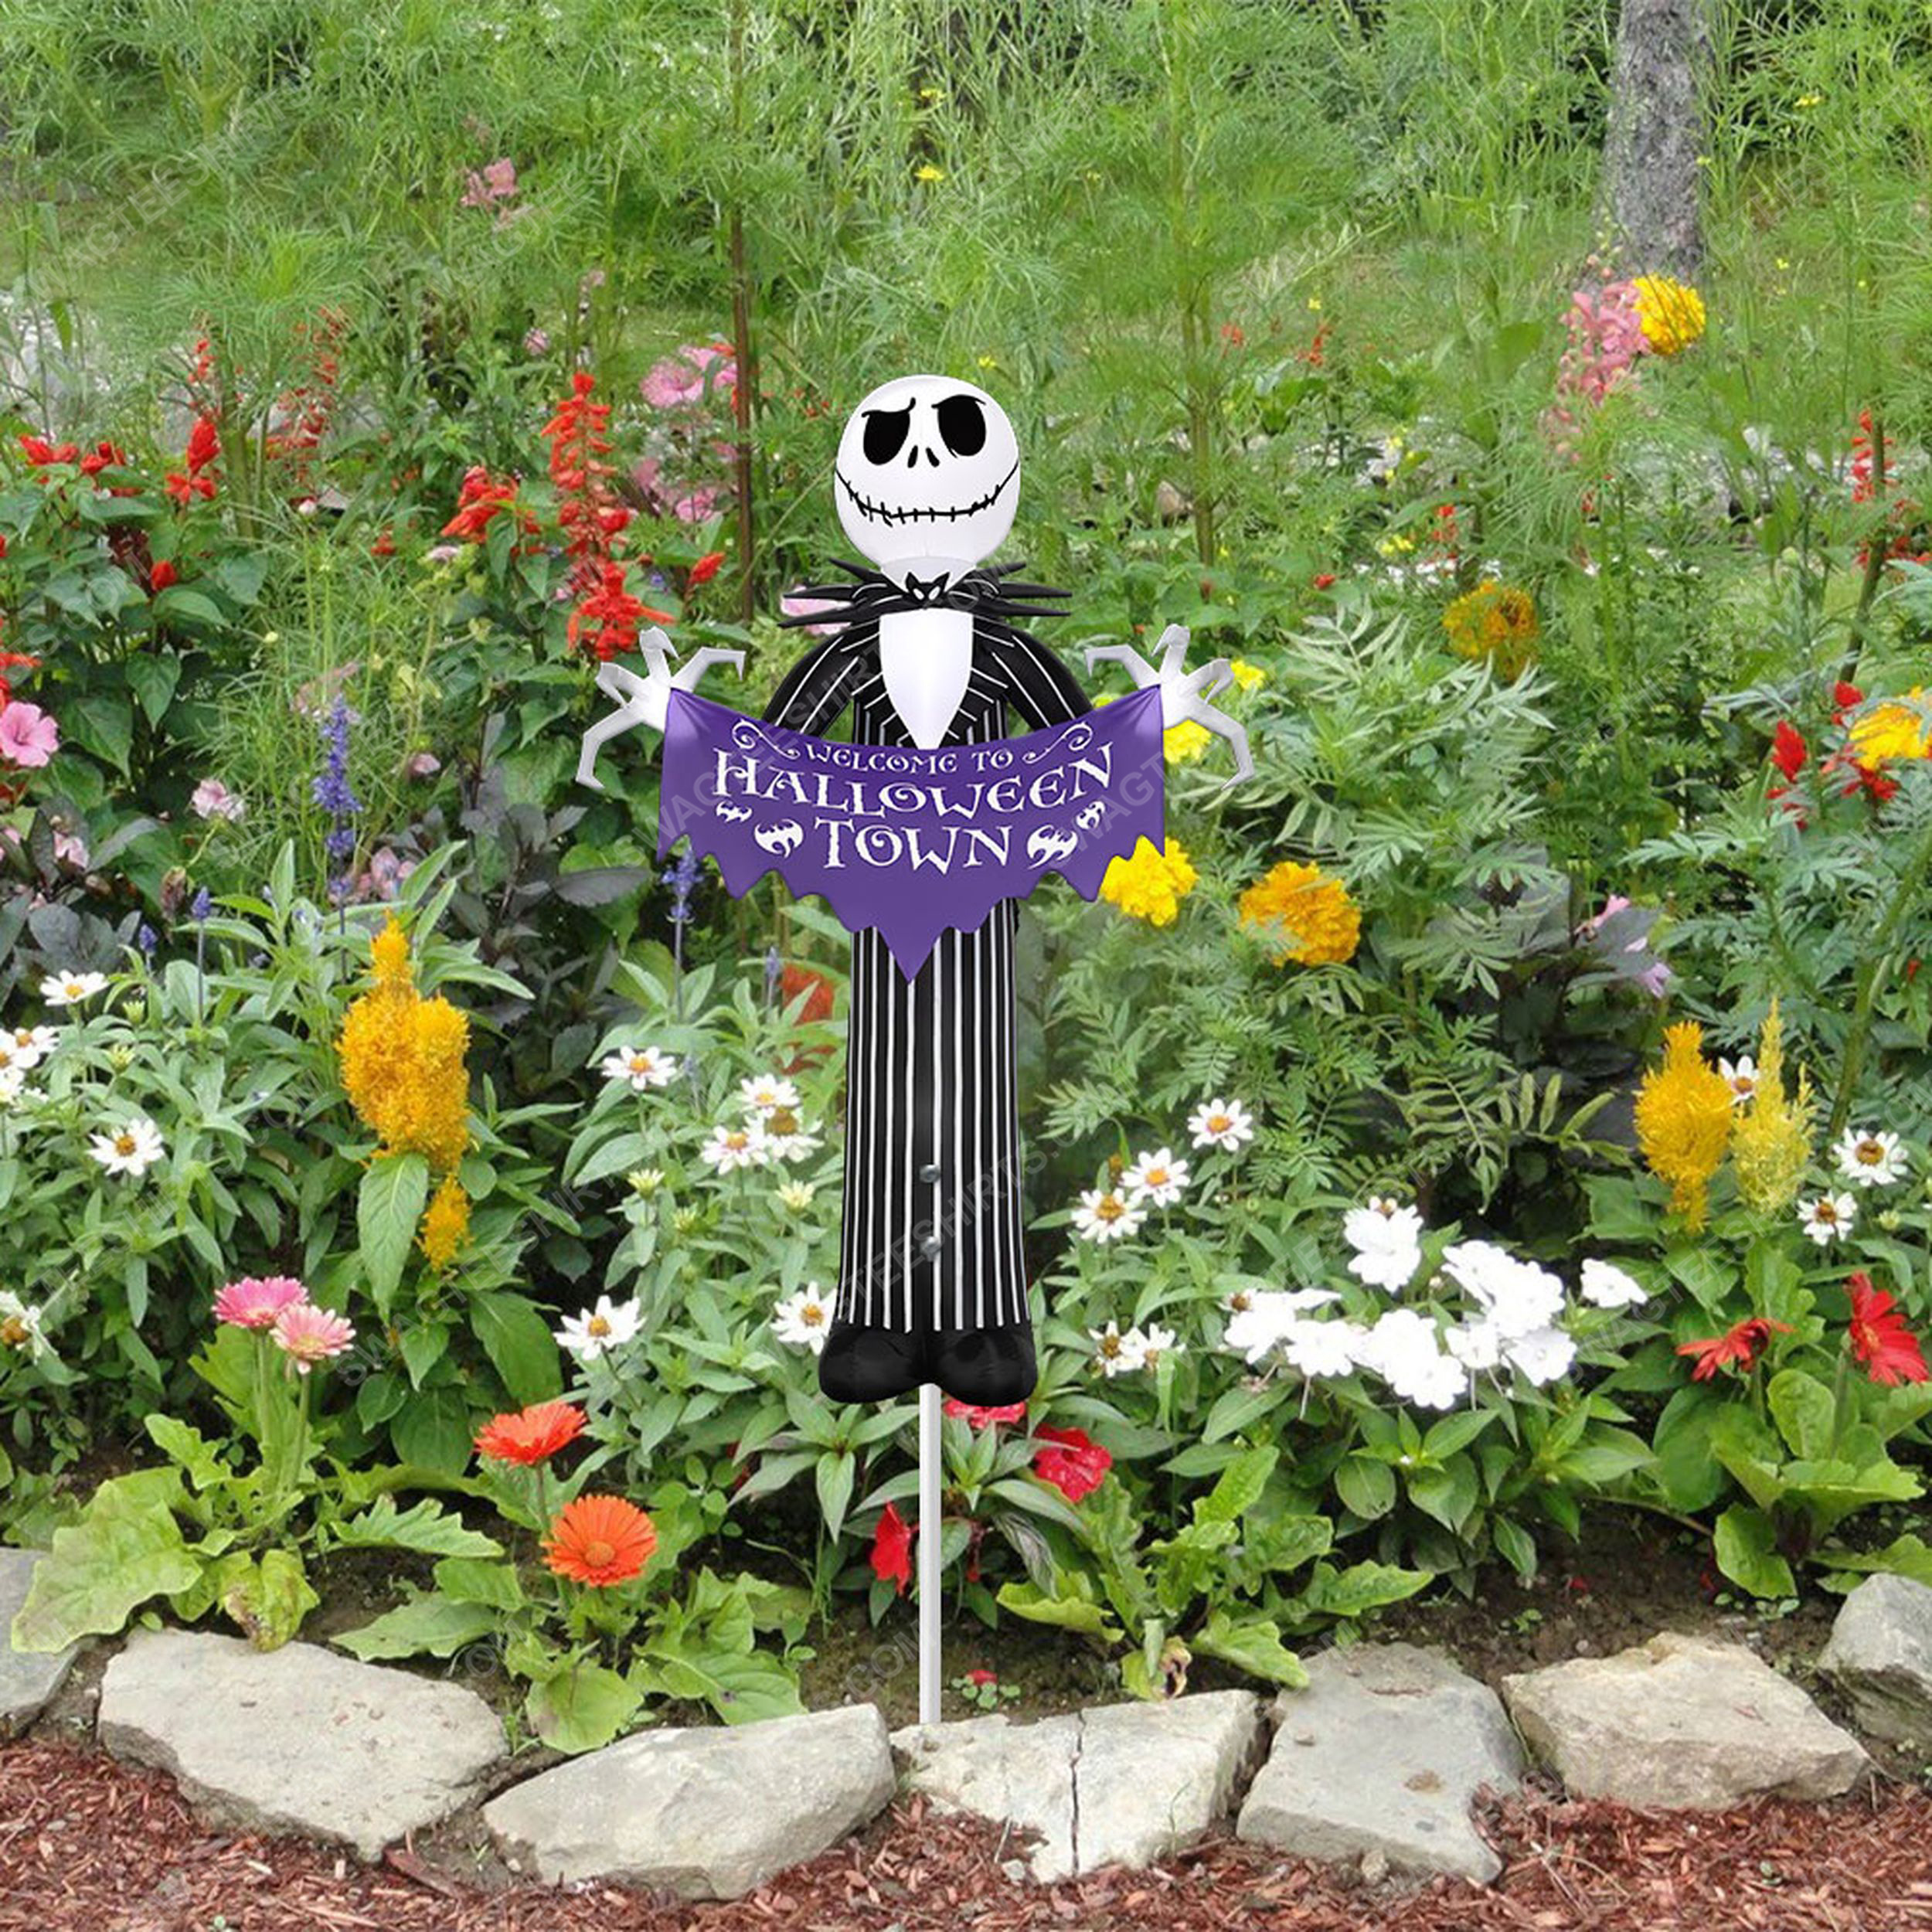 Jack skellington welcome to halloween town yard sign 3(1)